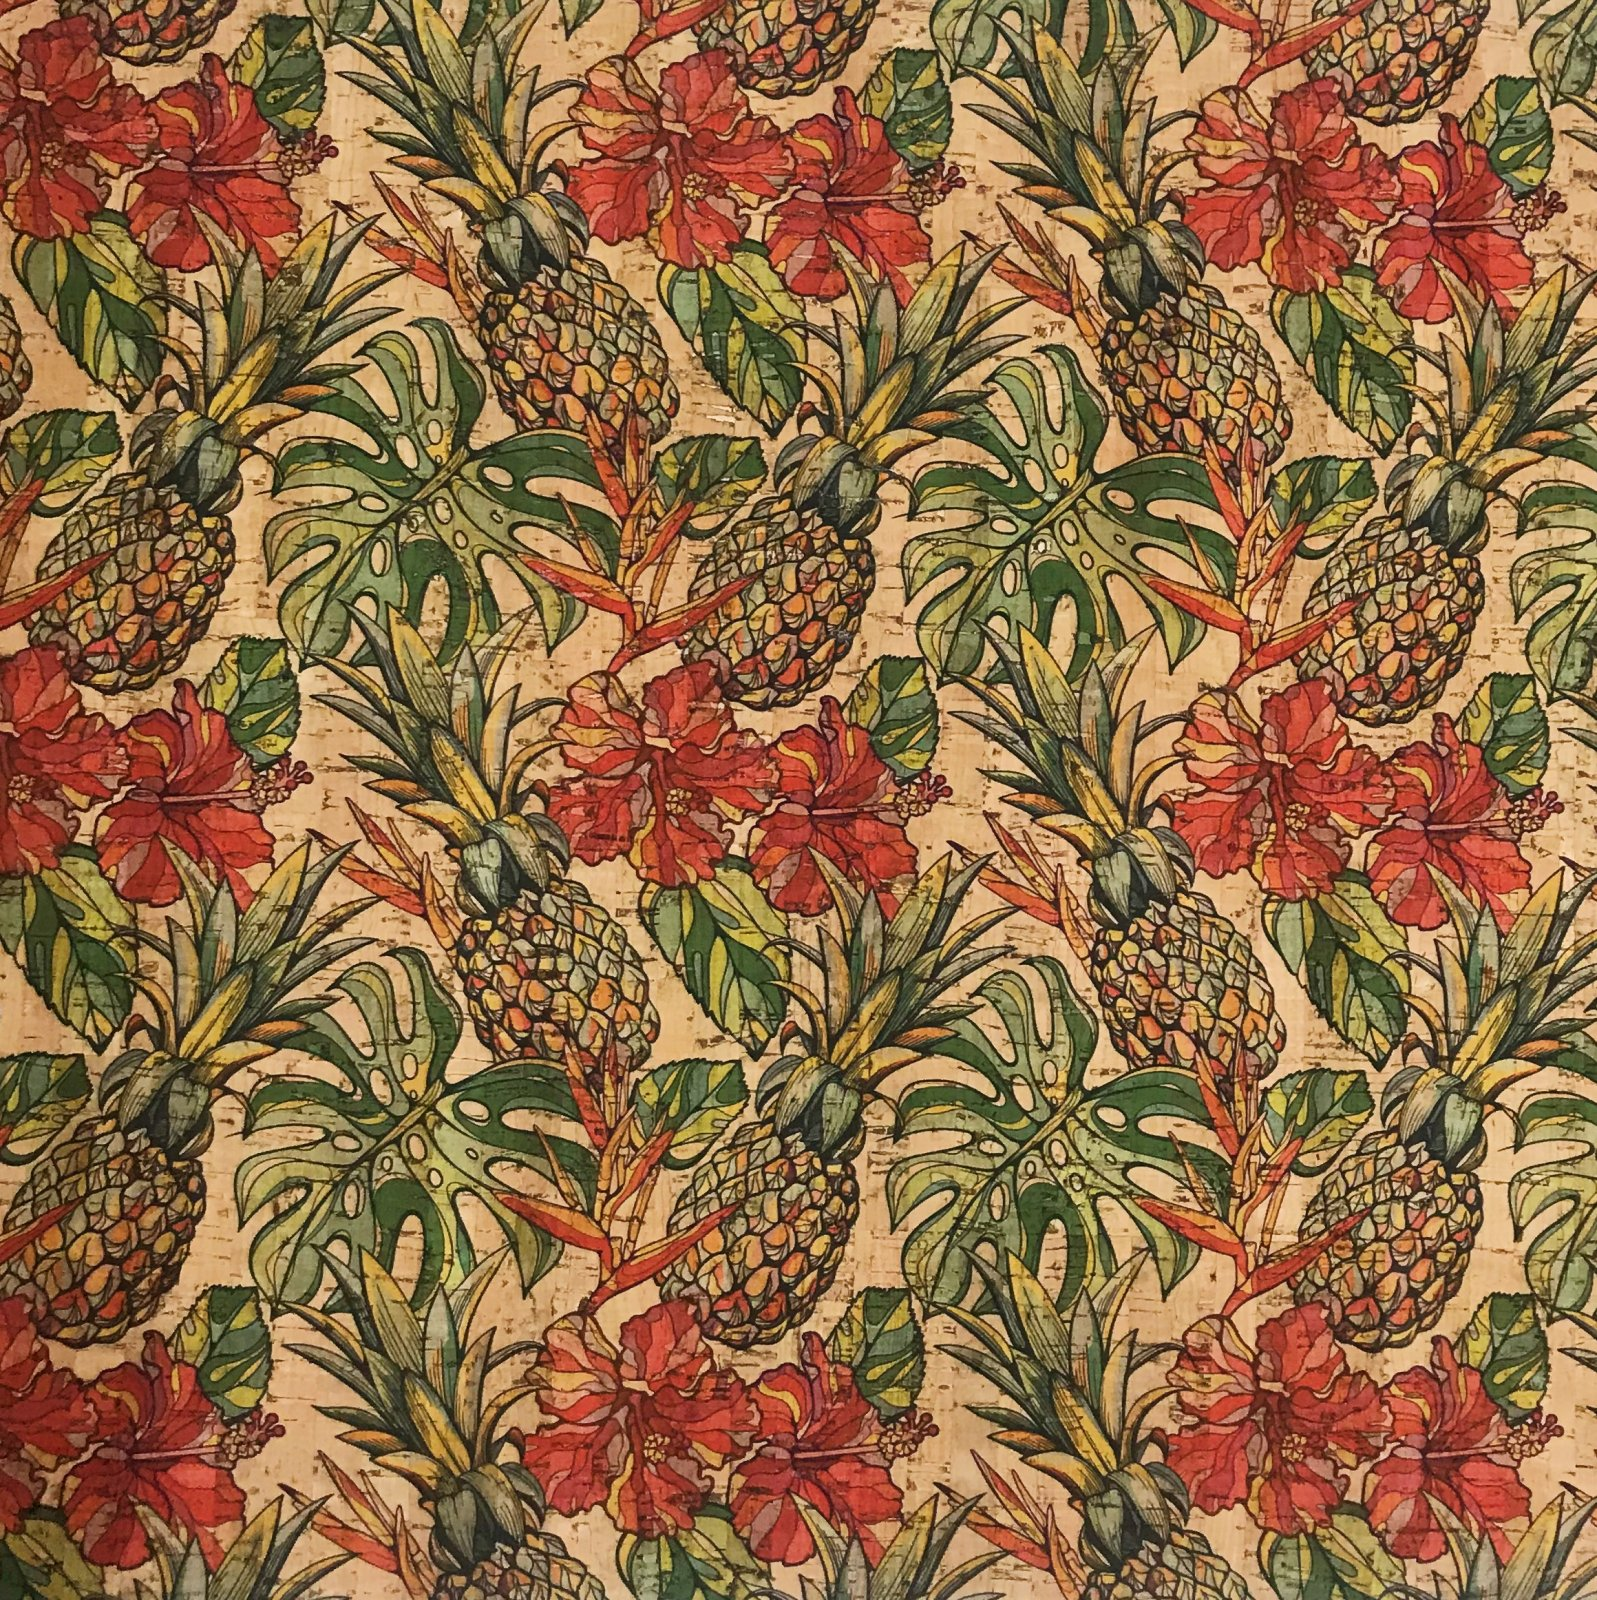 Pineapple Cork Fabric